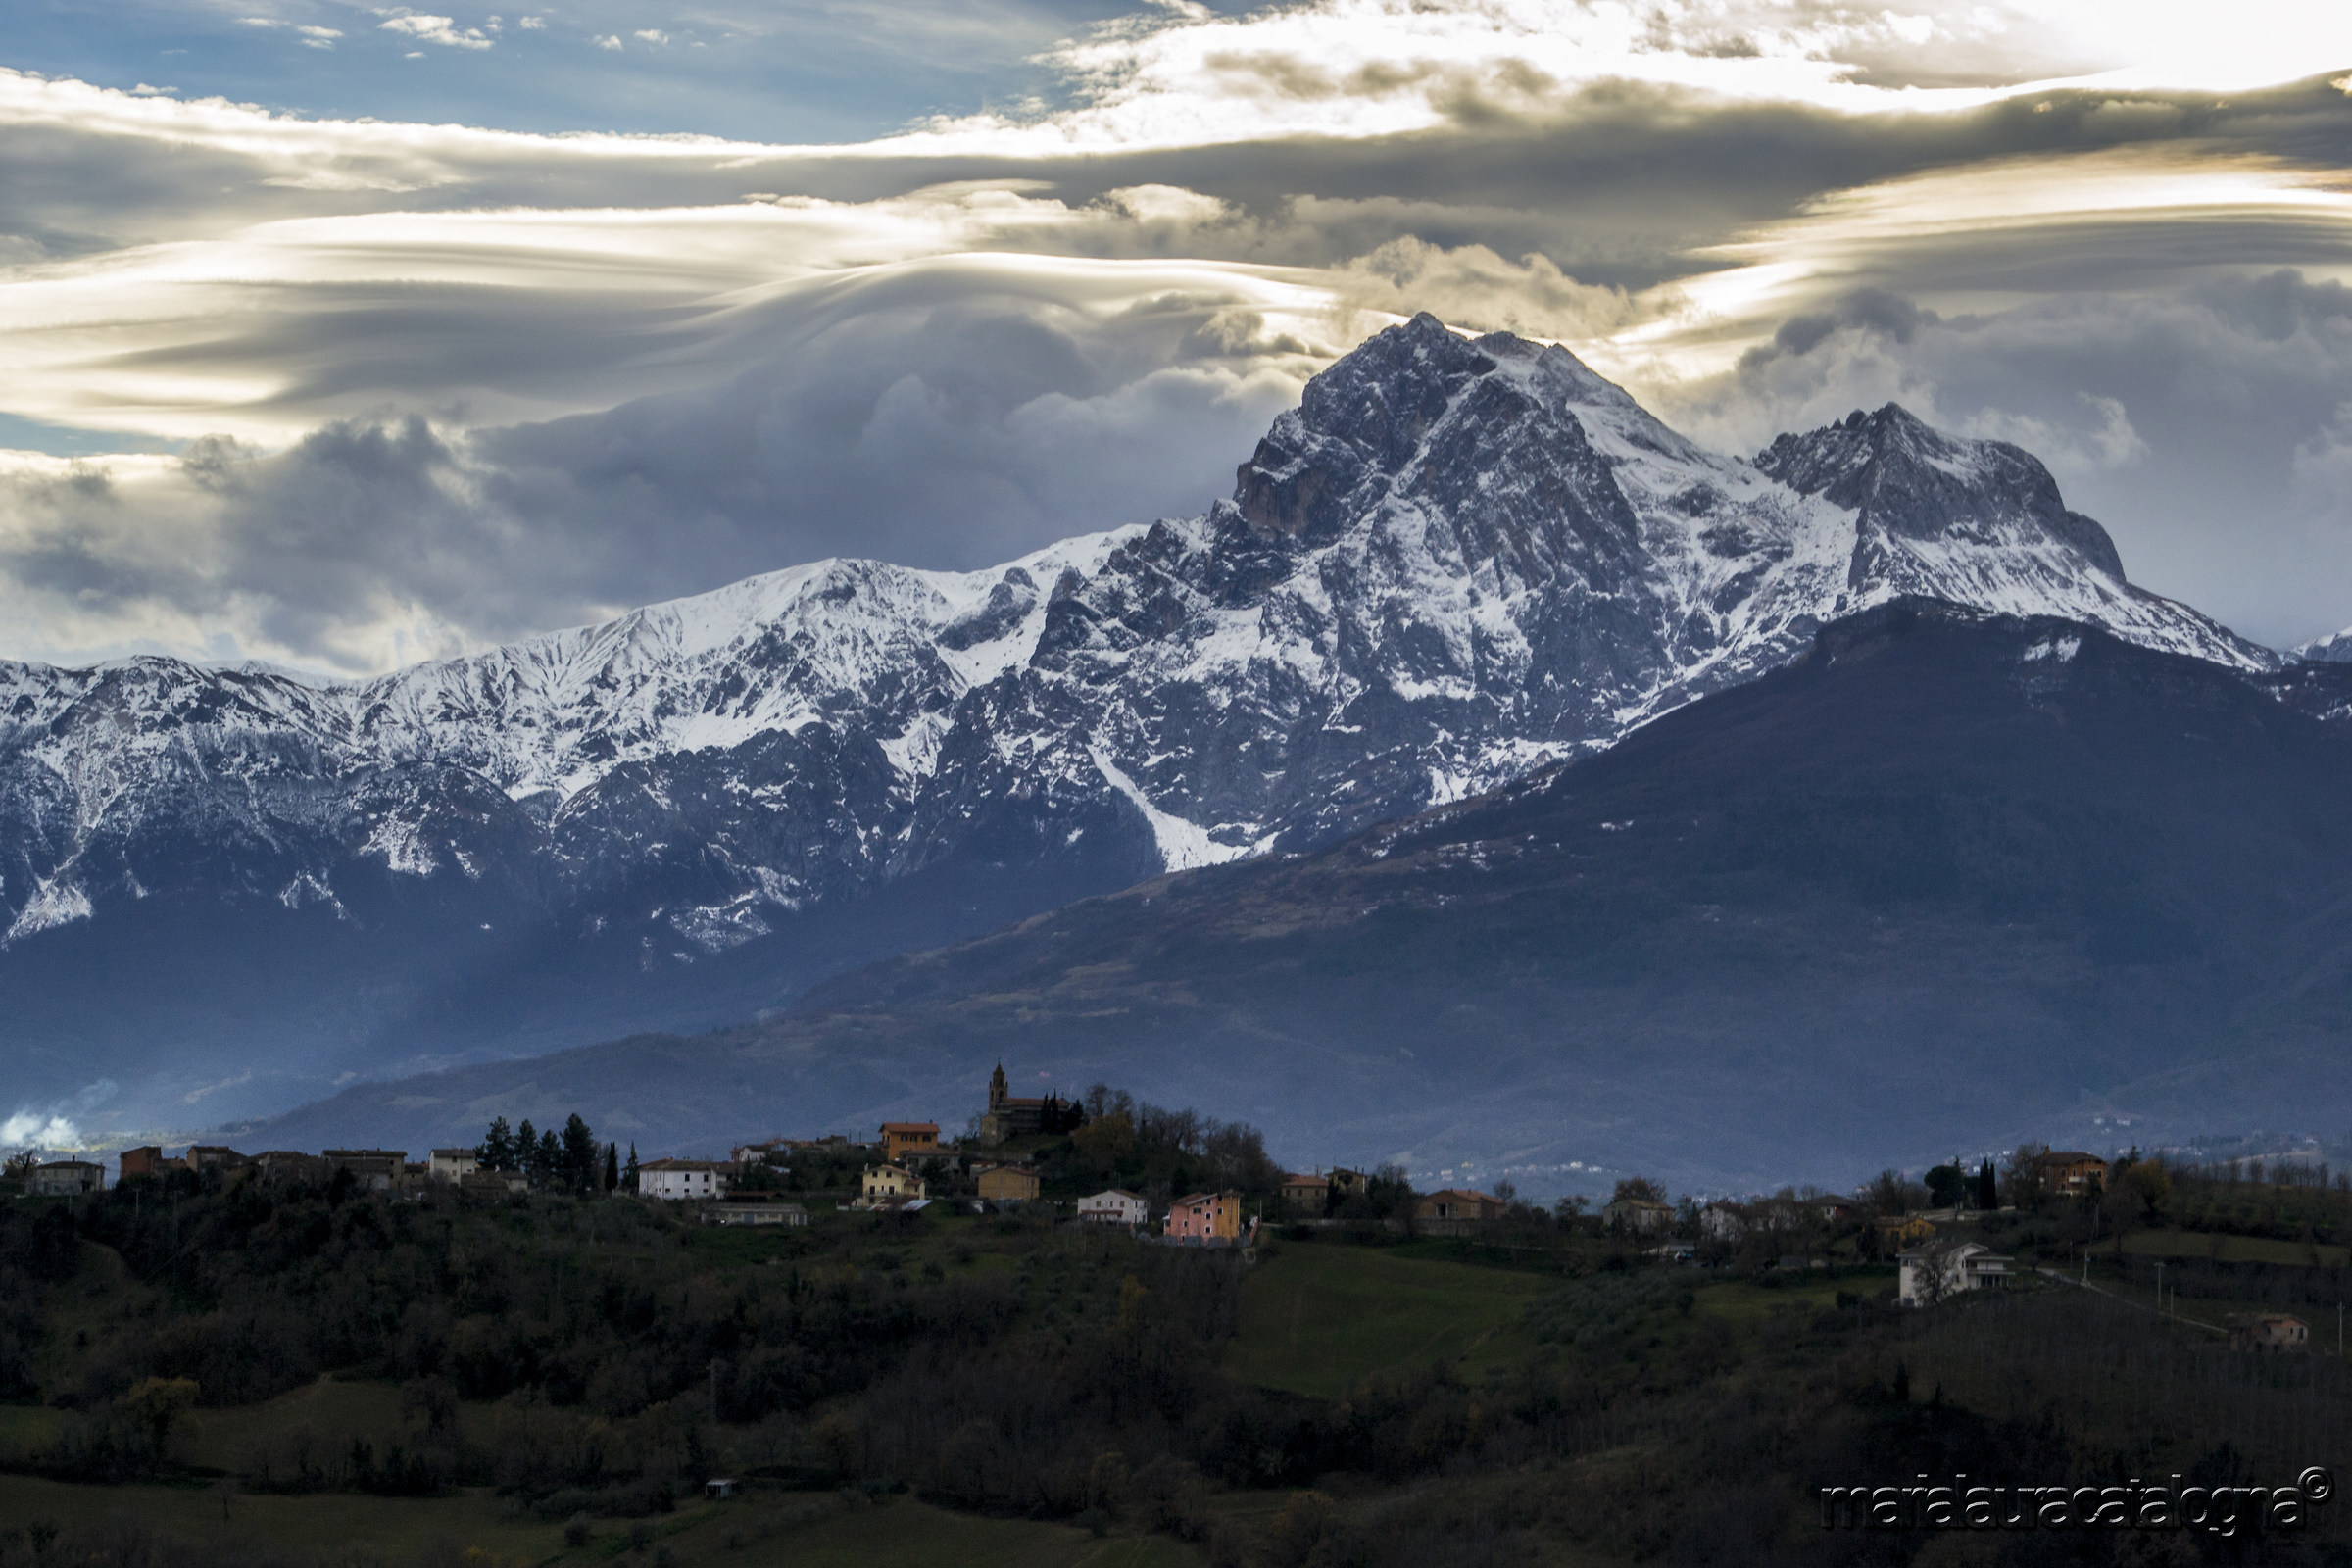 The Gran Sasso and the town of Rapino...